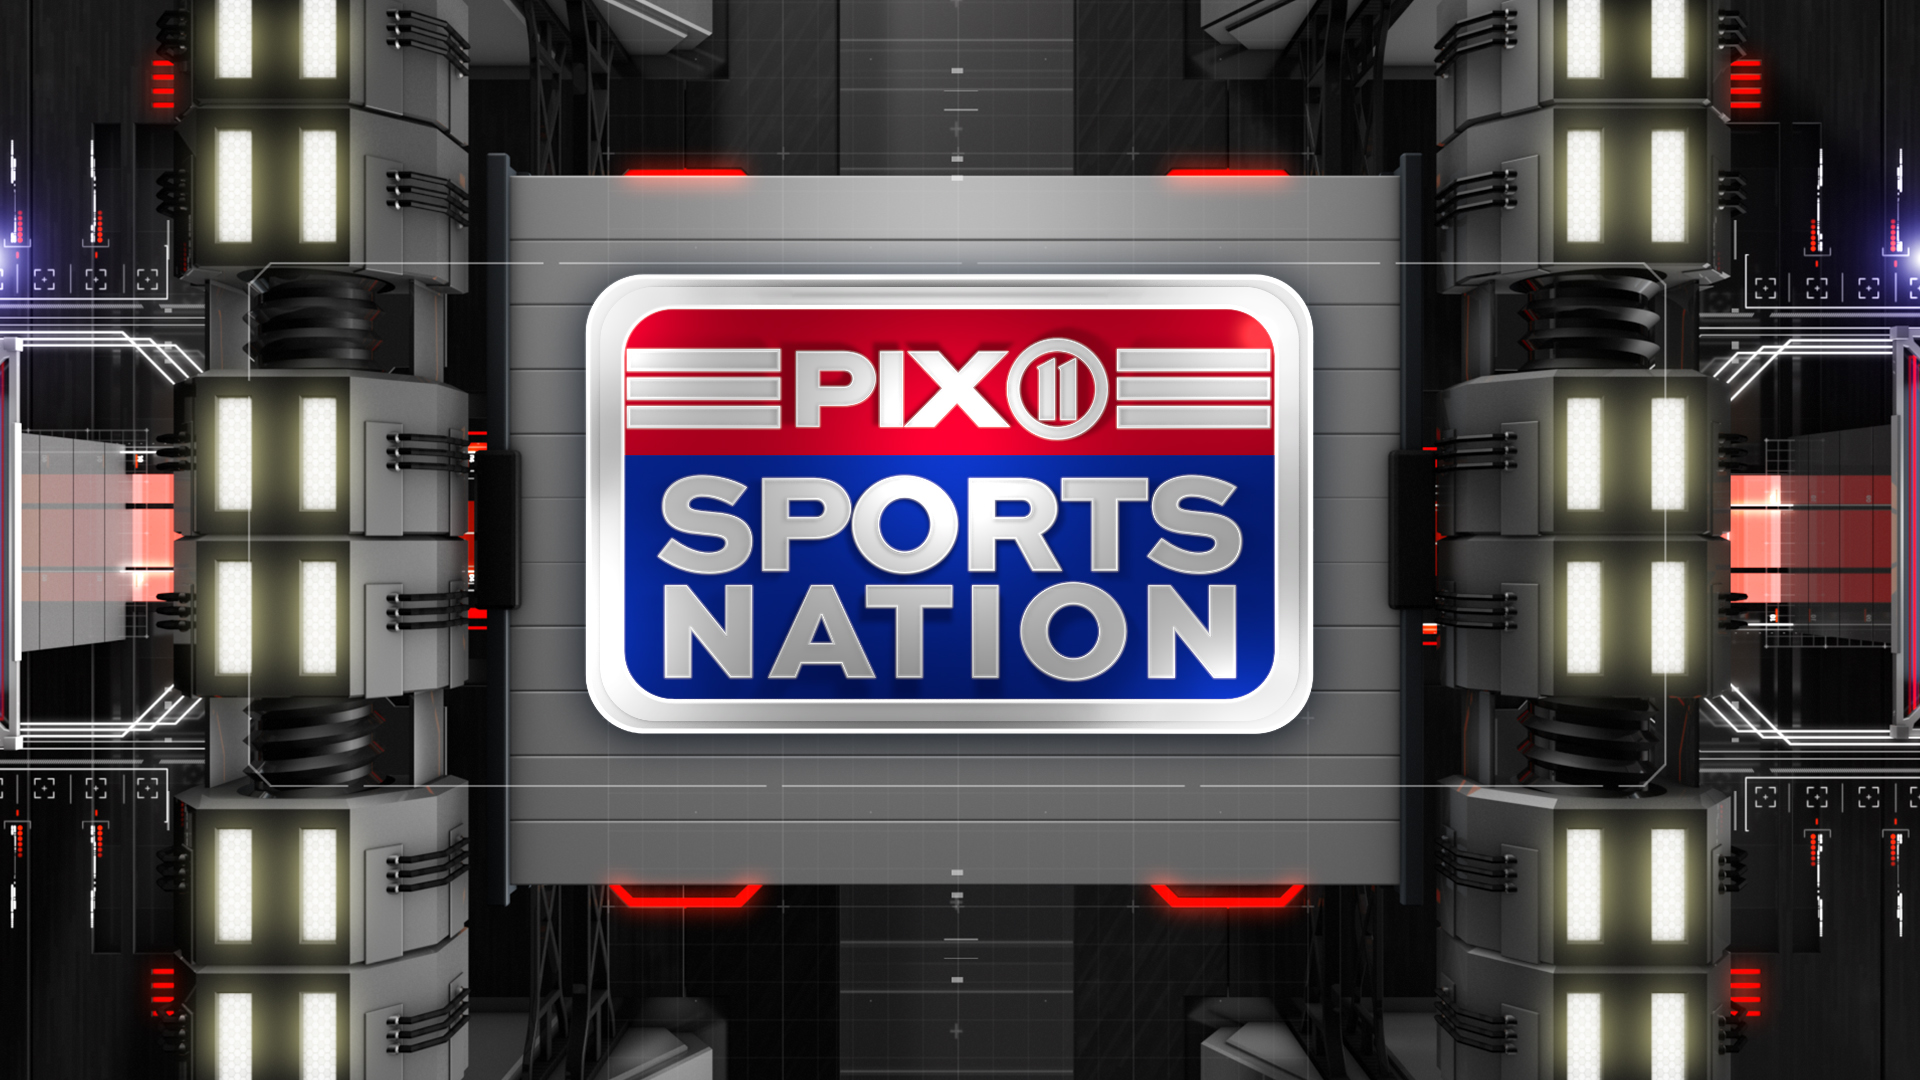 pix11 sports nation